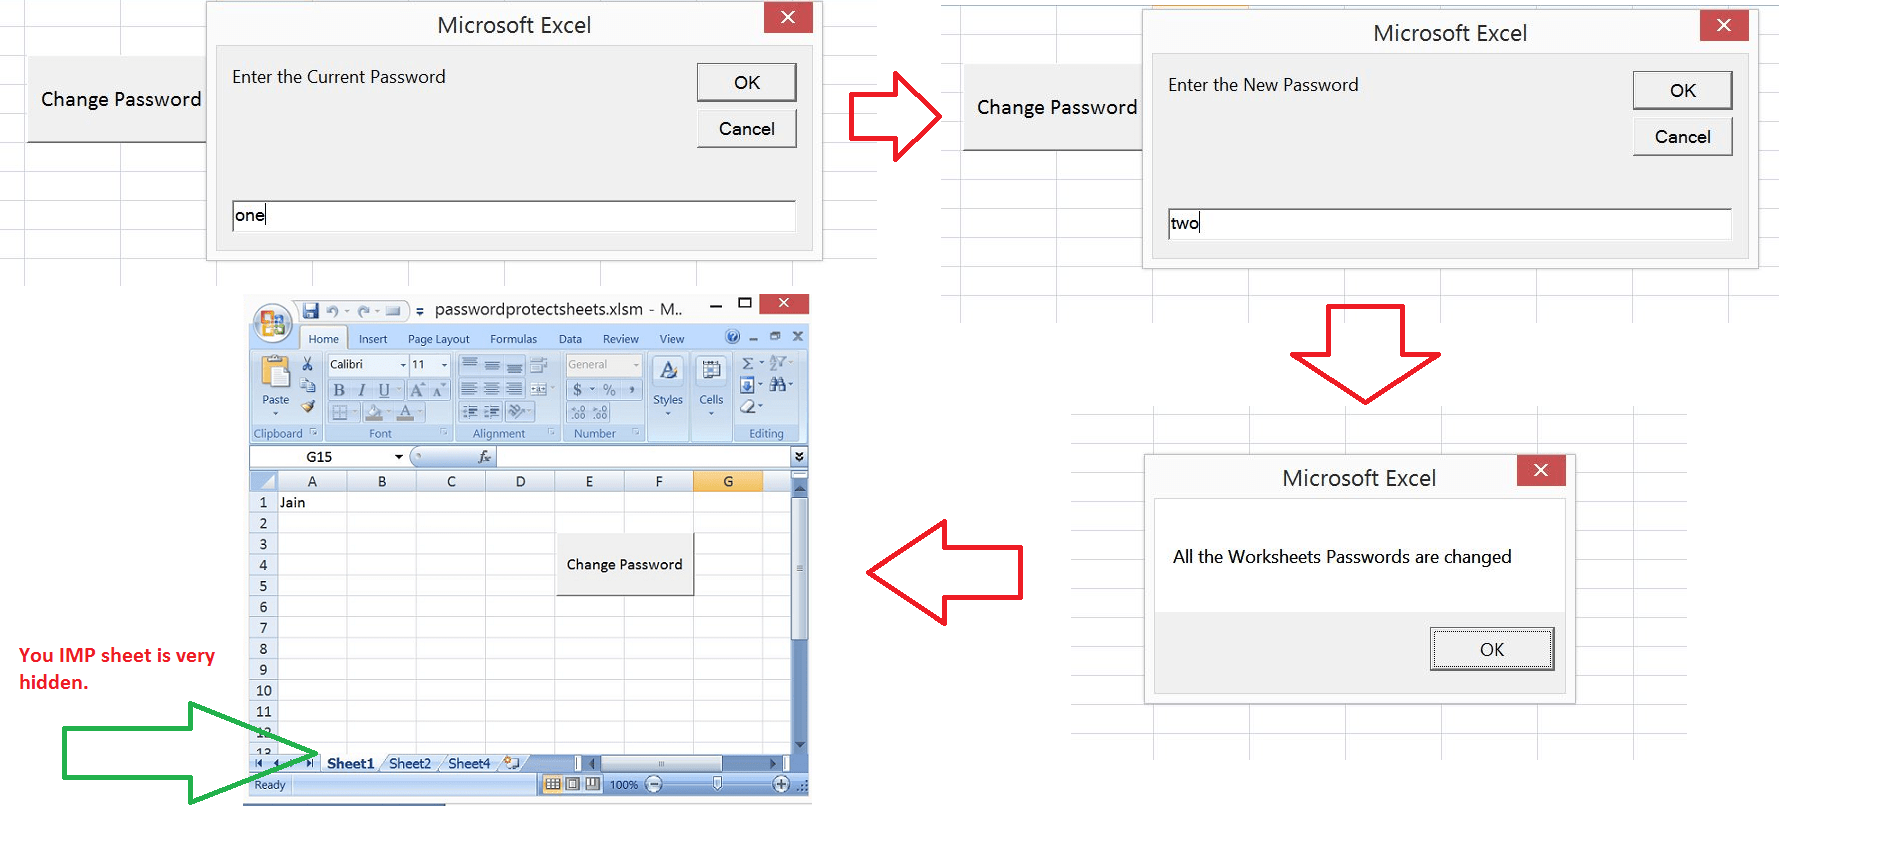 Excel Vba Change Passwords For All The Worksheets In One Shot Excel Macro